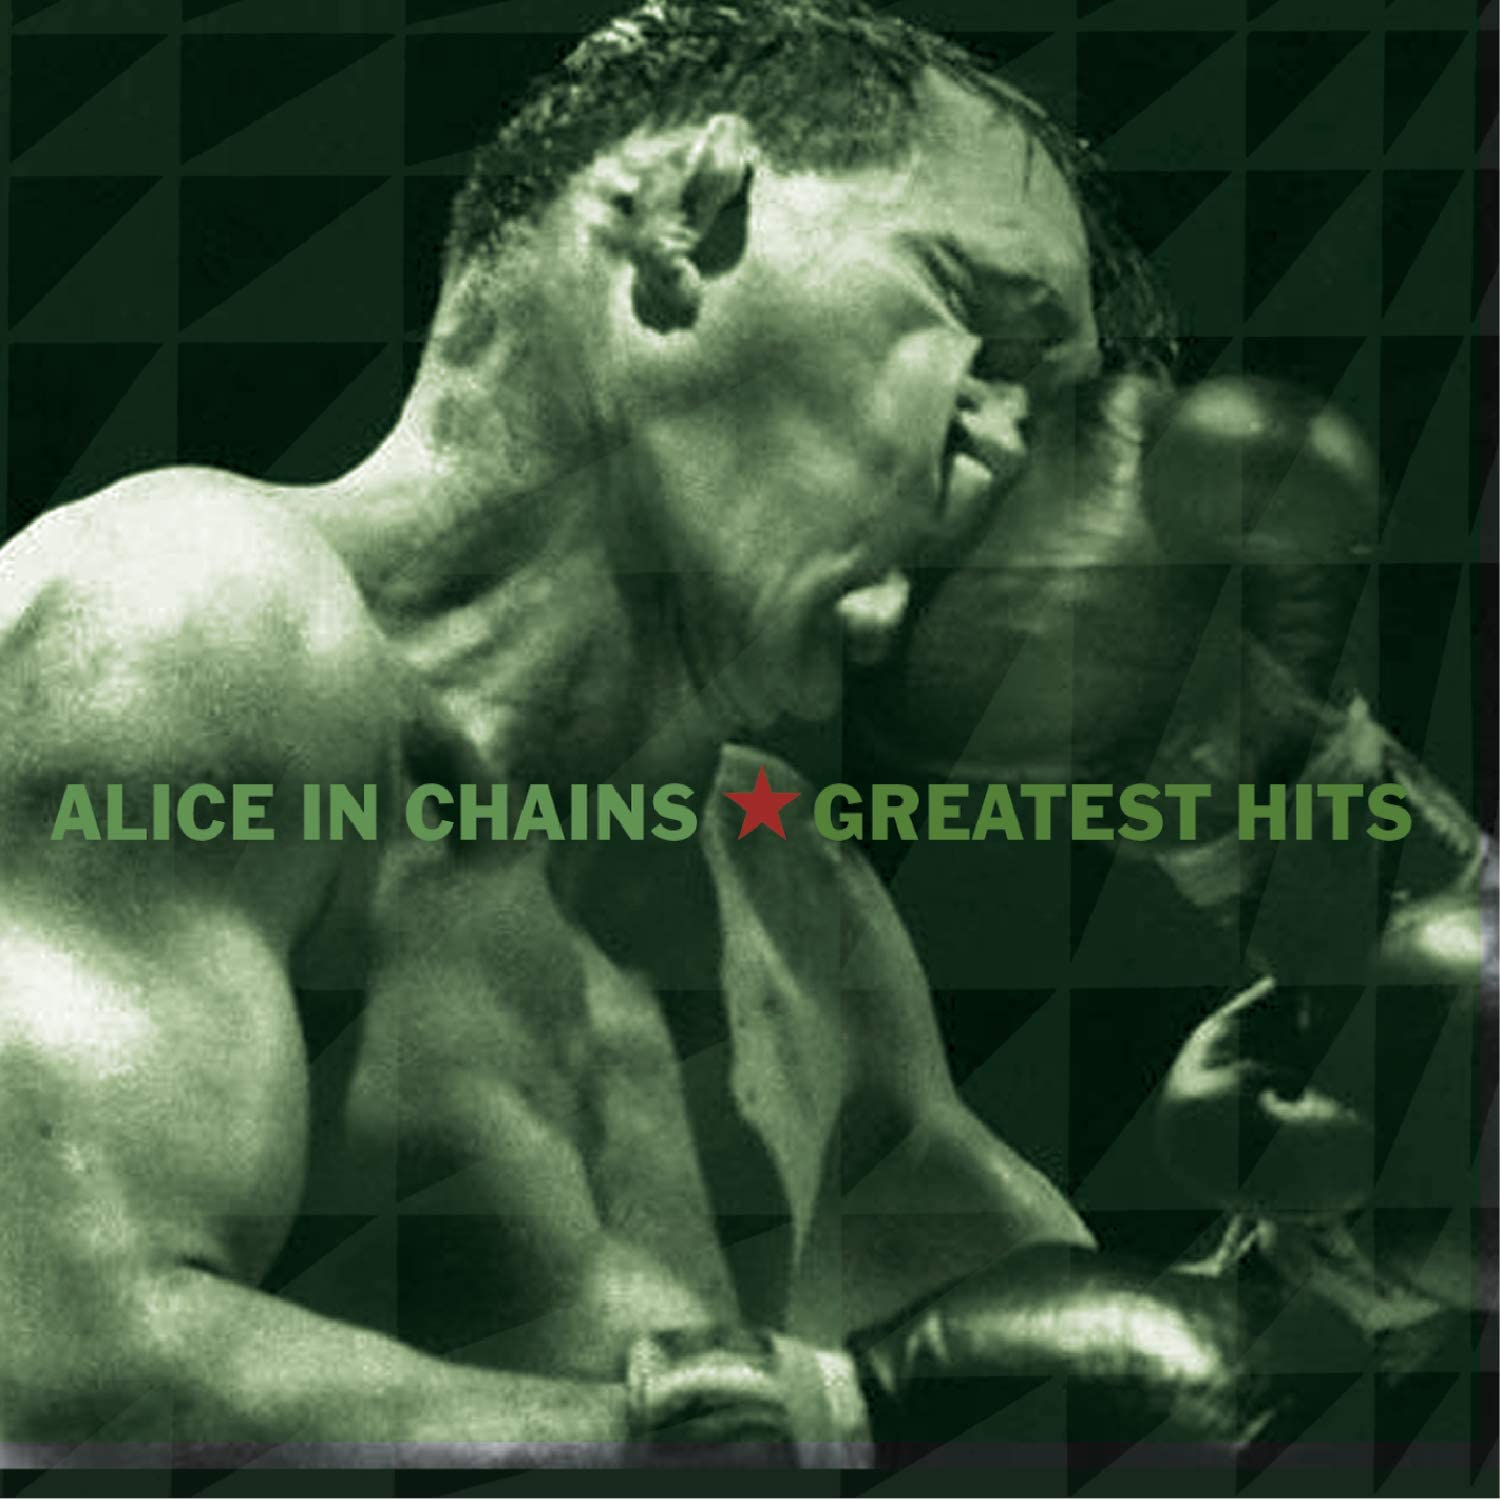 Alice in Chains Greatest Hits.jpg